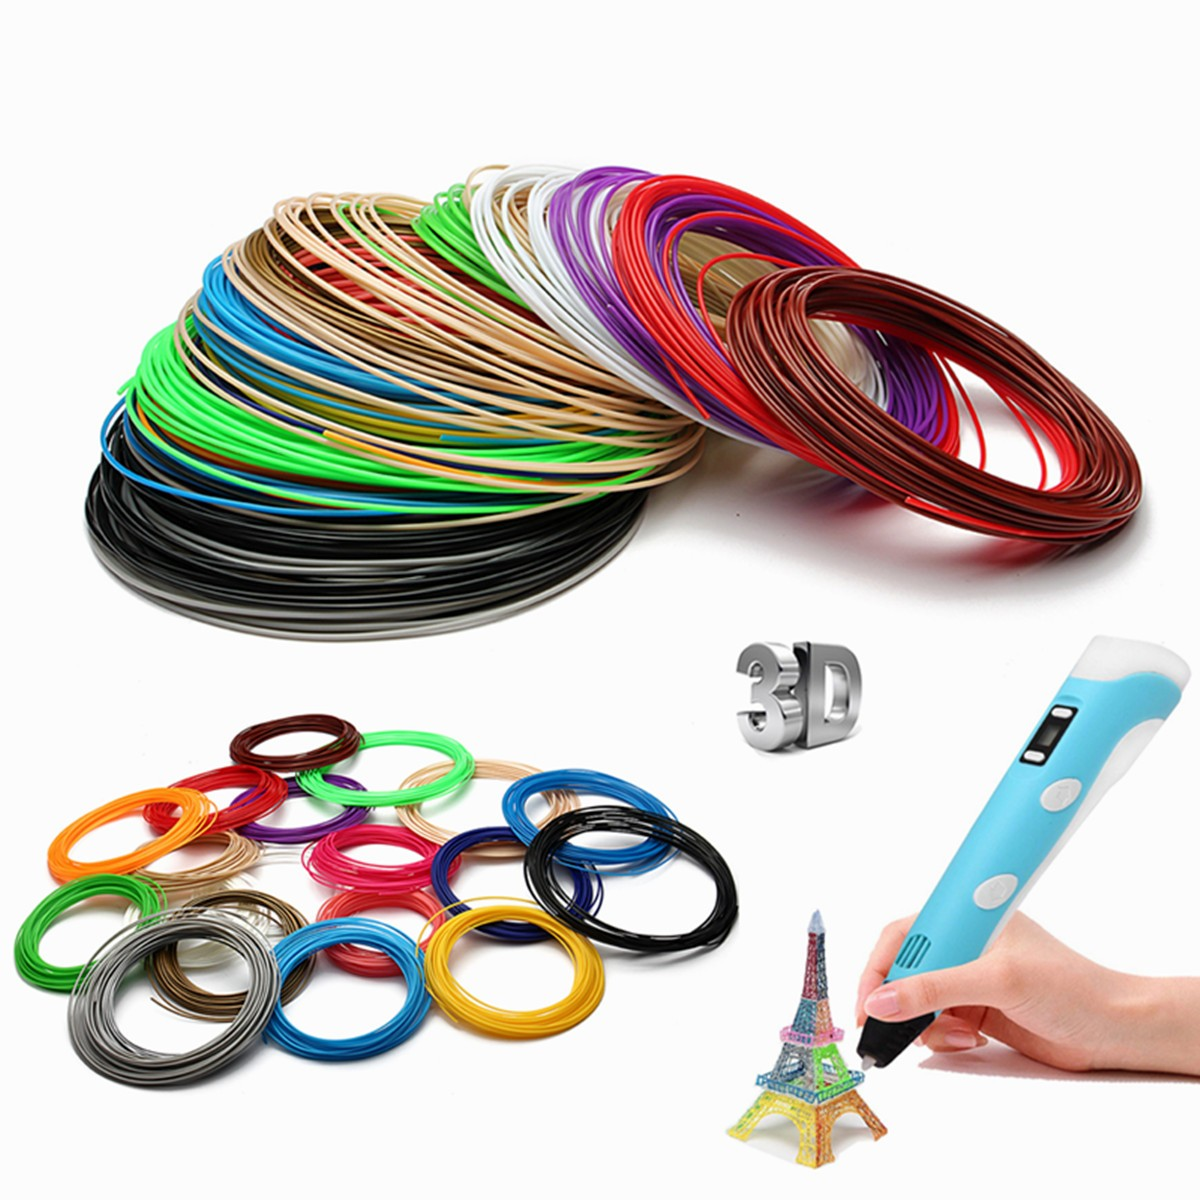 20pcs 1.75mm ABS Printing Filament Modeling For 3D Printer Pen Drawing 10m-pcs 200m In Total